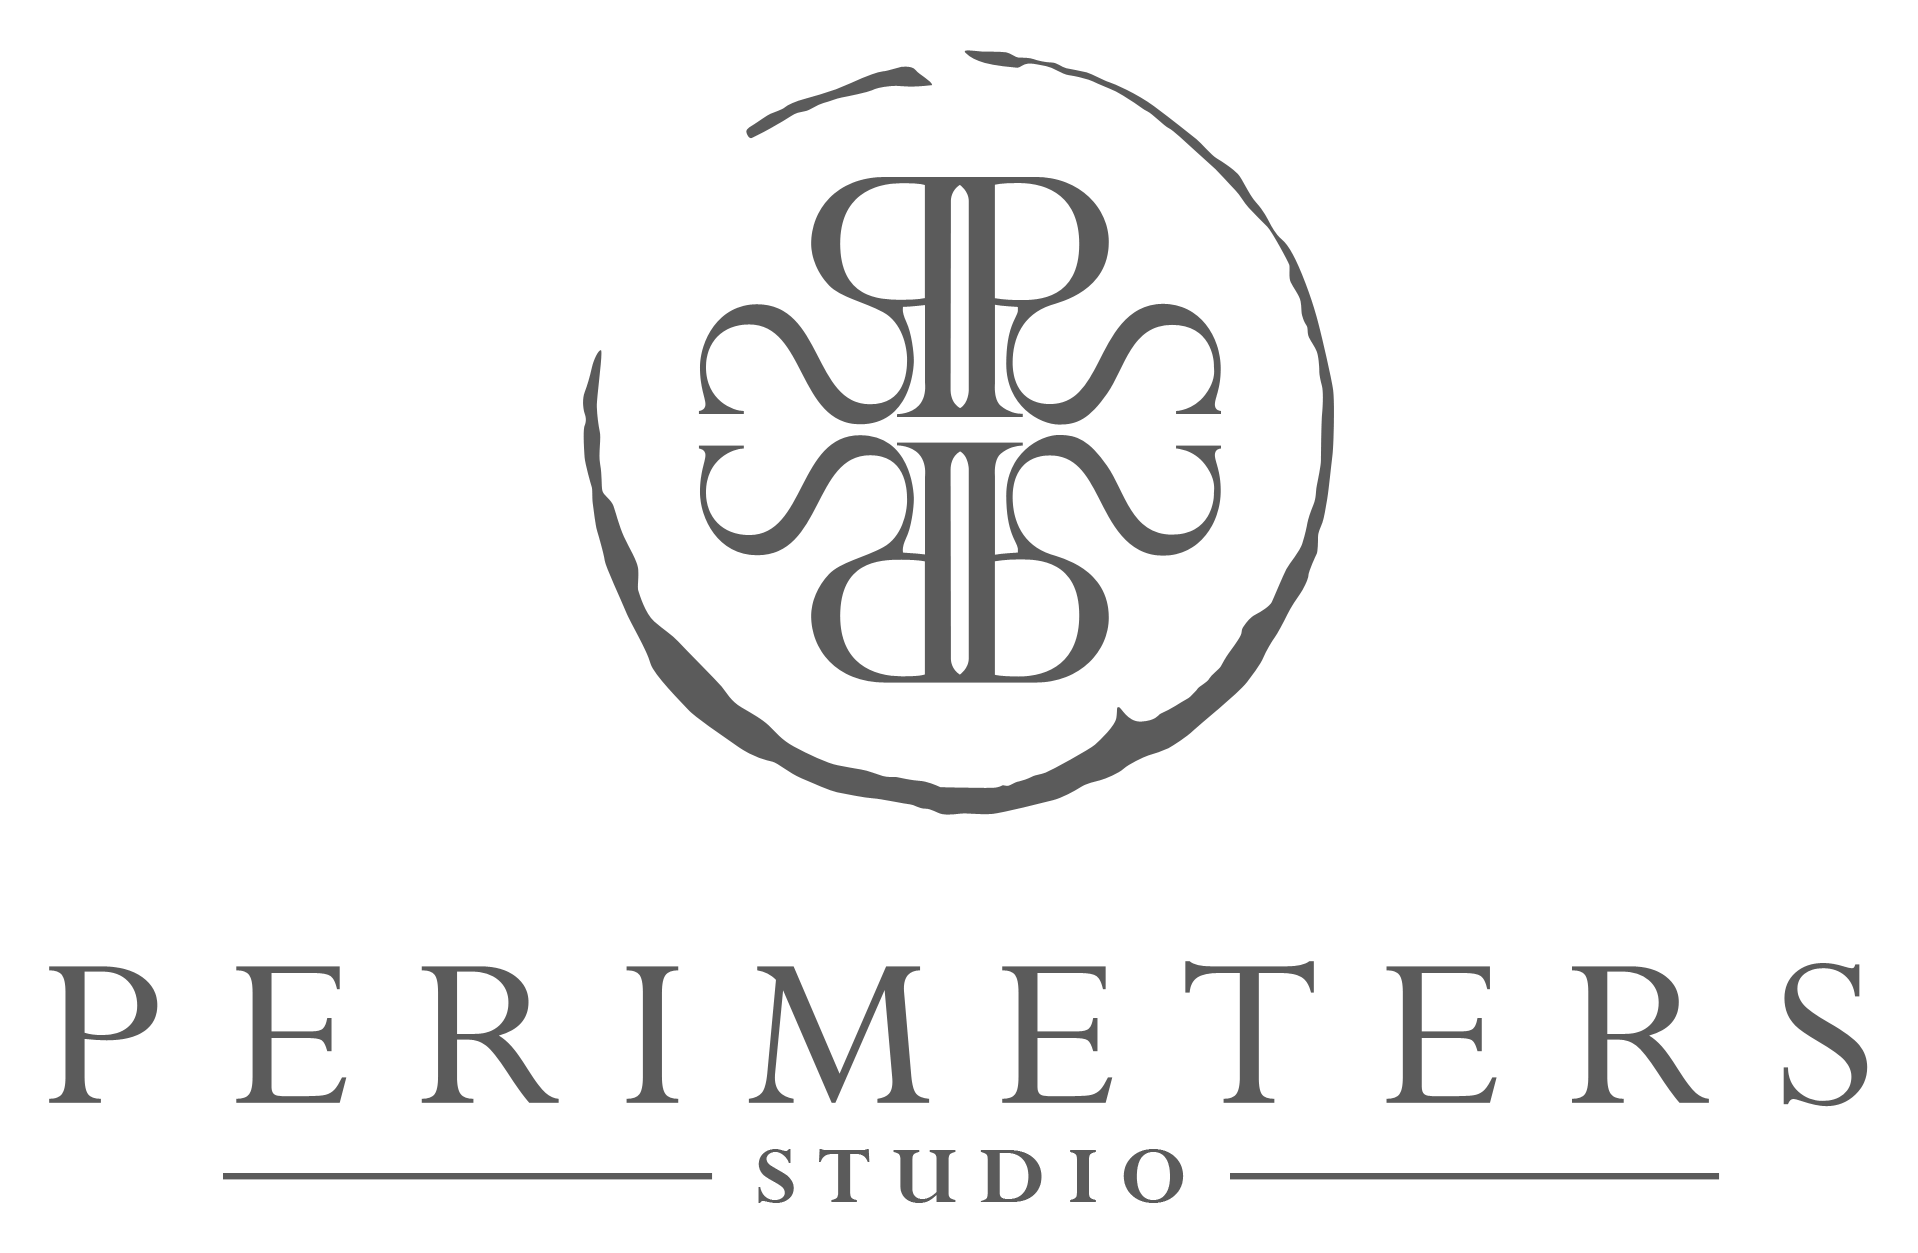 Perimeters Studio logo